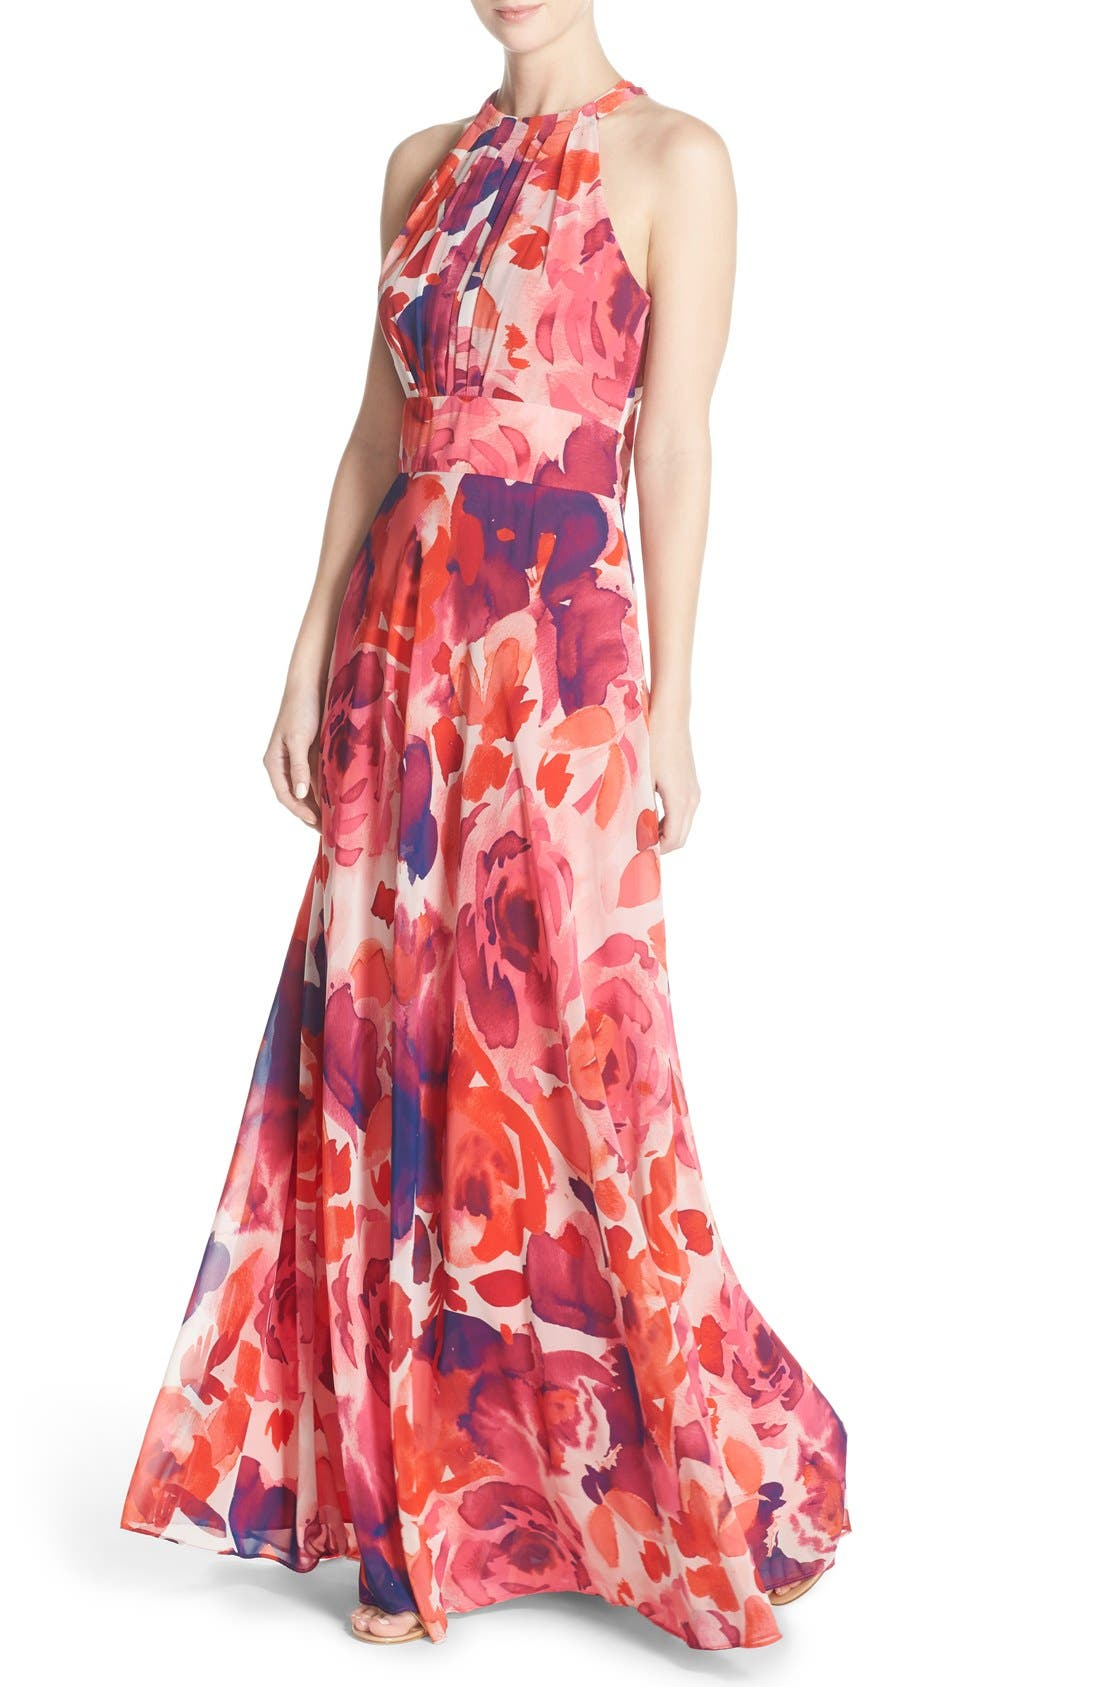 ELIZA J, Floral Print Halter Maxi Dress, Alternate thumbnail 5, color, PINK/ CORAL/ PURPLE